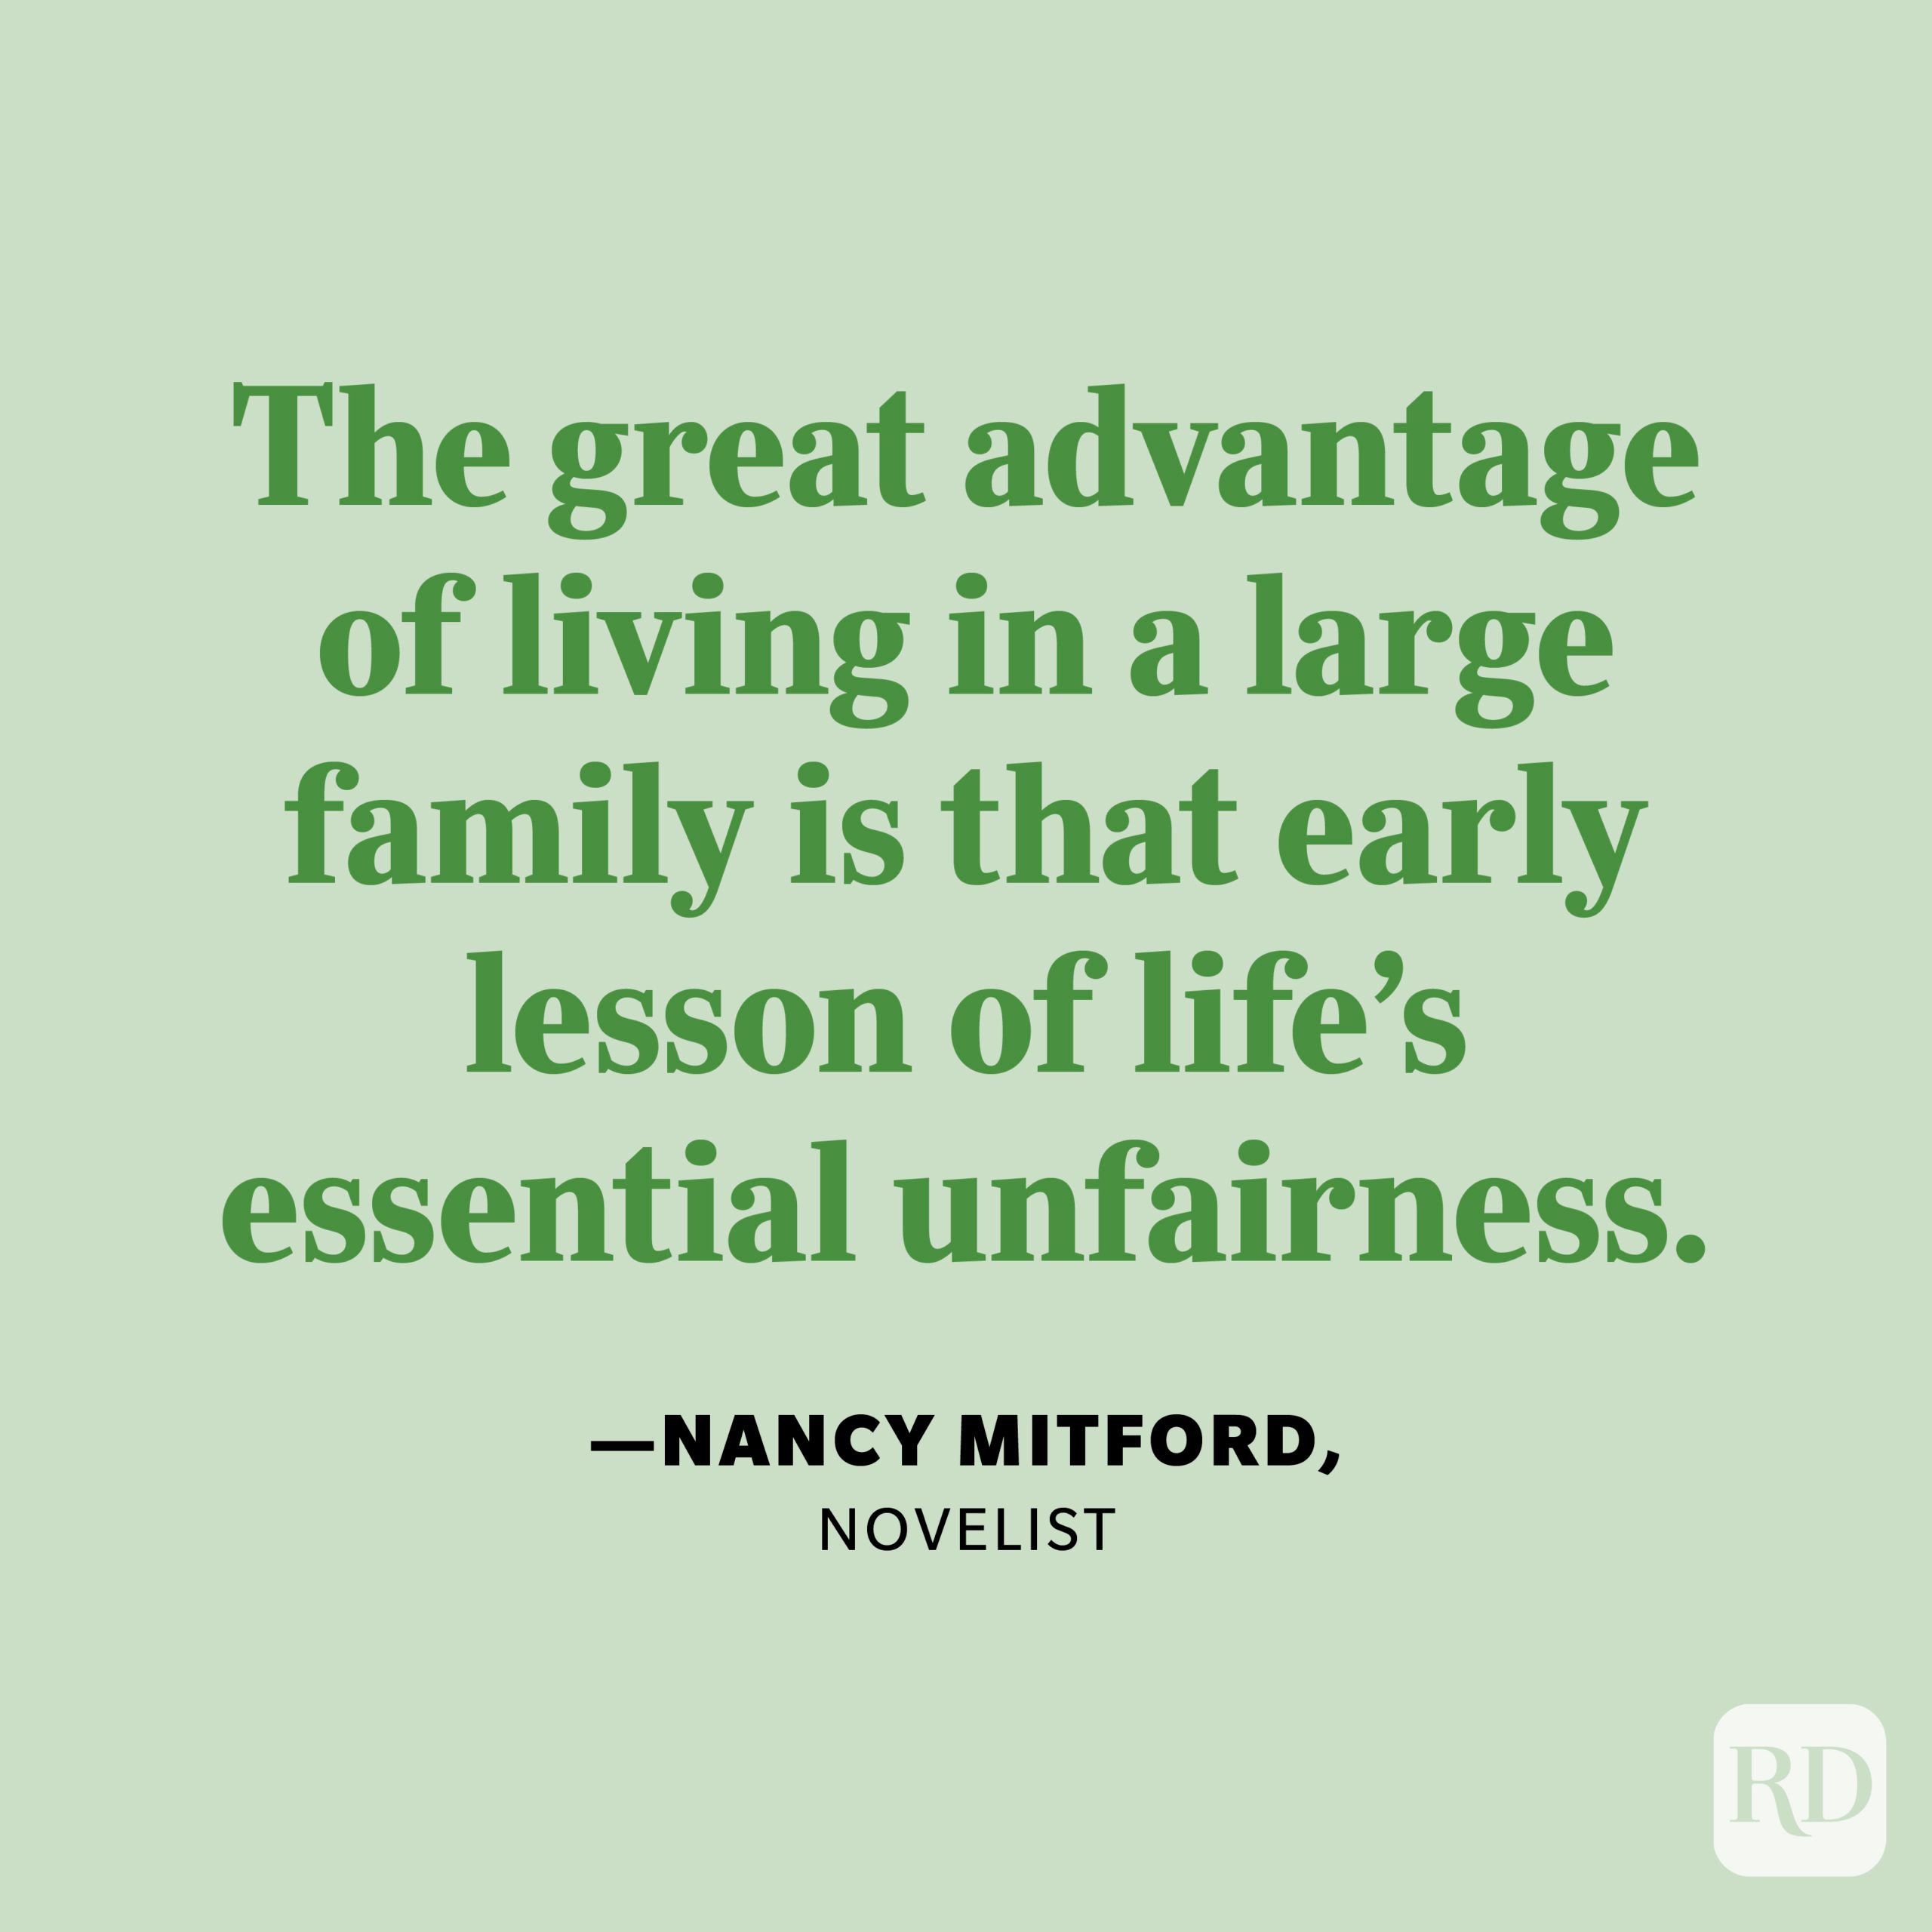 """""""The great advantage of living in a large family is that early lesson of life's essential unfairness."""" —Nancy Mitford, novelist"""